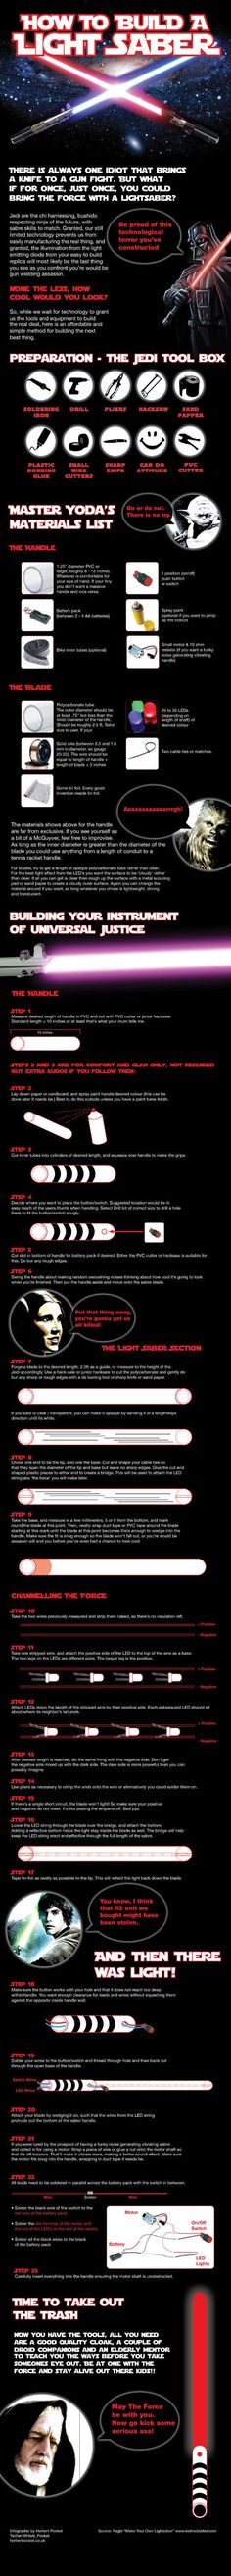 DIY your own light saber!